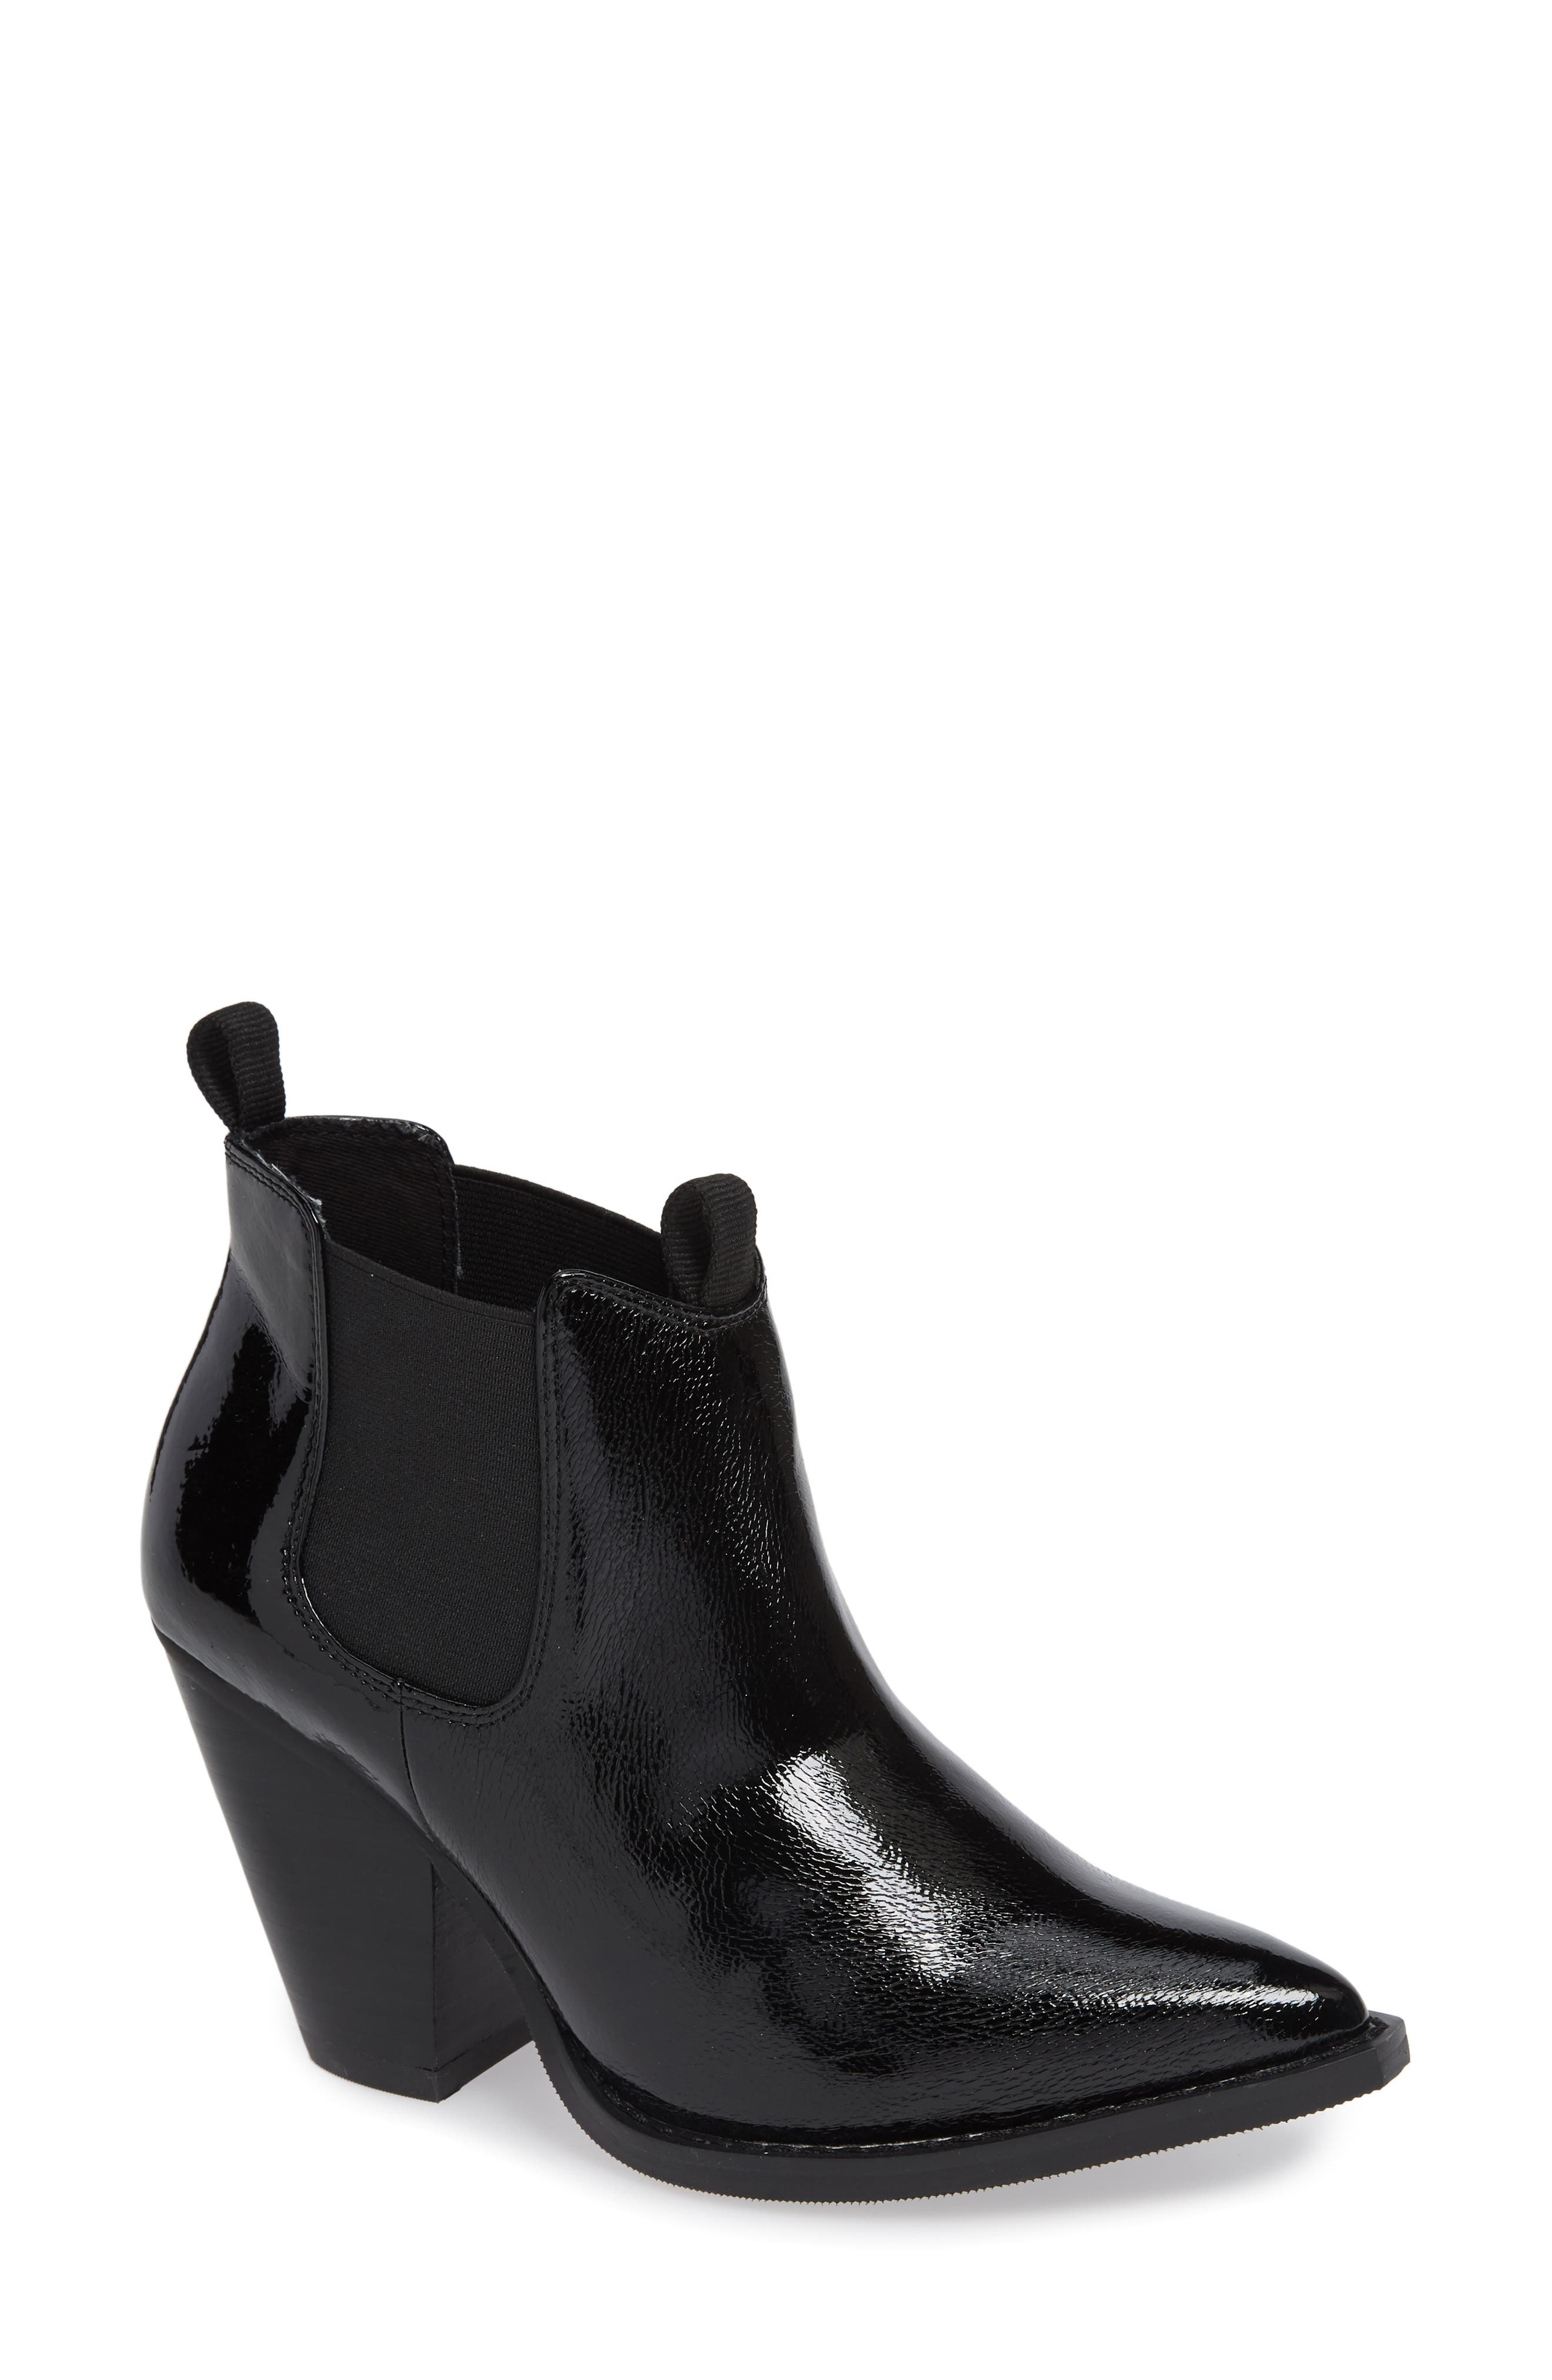 Jane And The Shoe Lila Bootie, Black